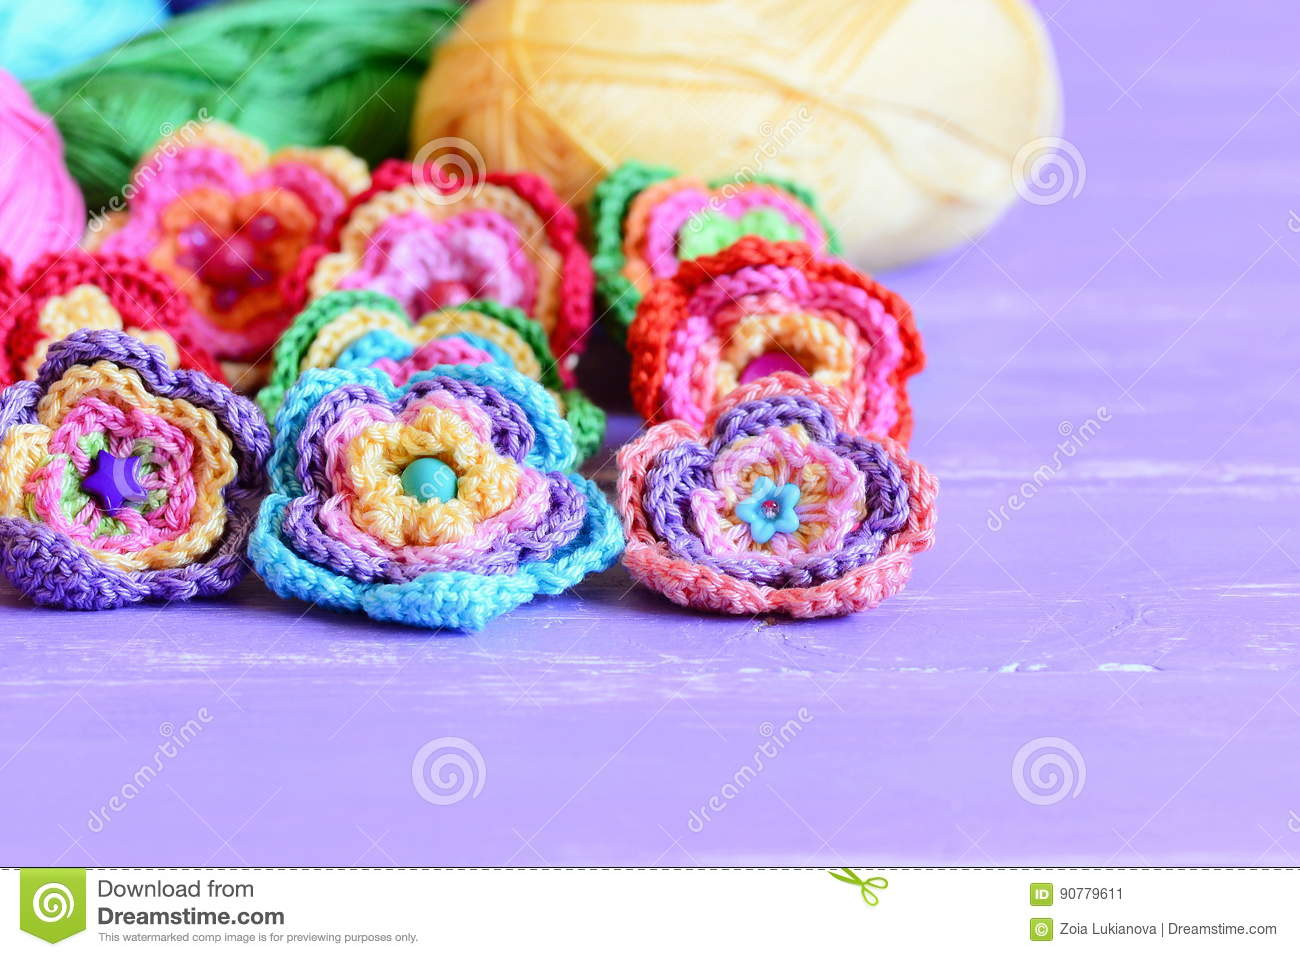 Crochet flowers embellished with buttons and beads beautiful download crochet flowers embellished with buttons and beads beautiful crochet flowers colored cotton yarn izmirmasajfo